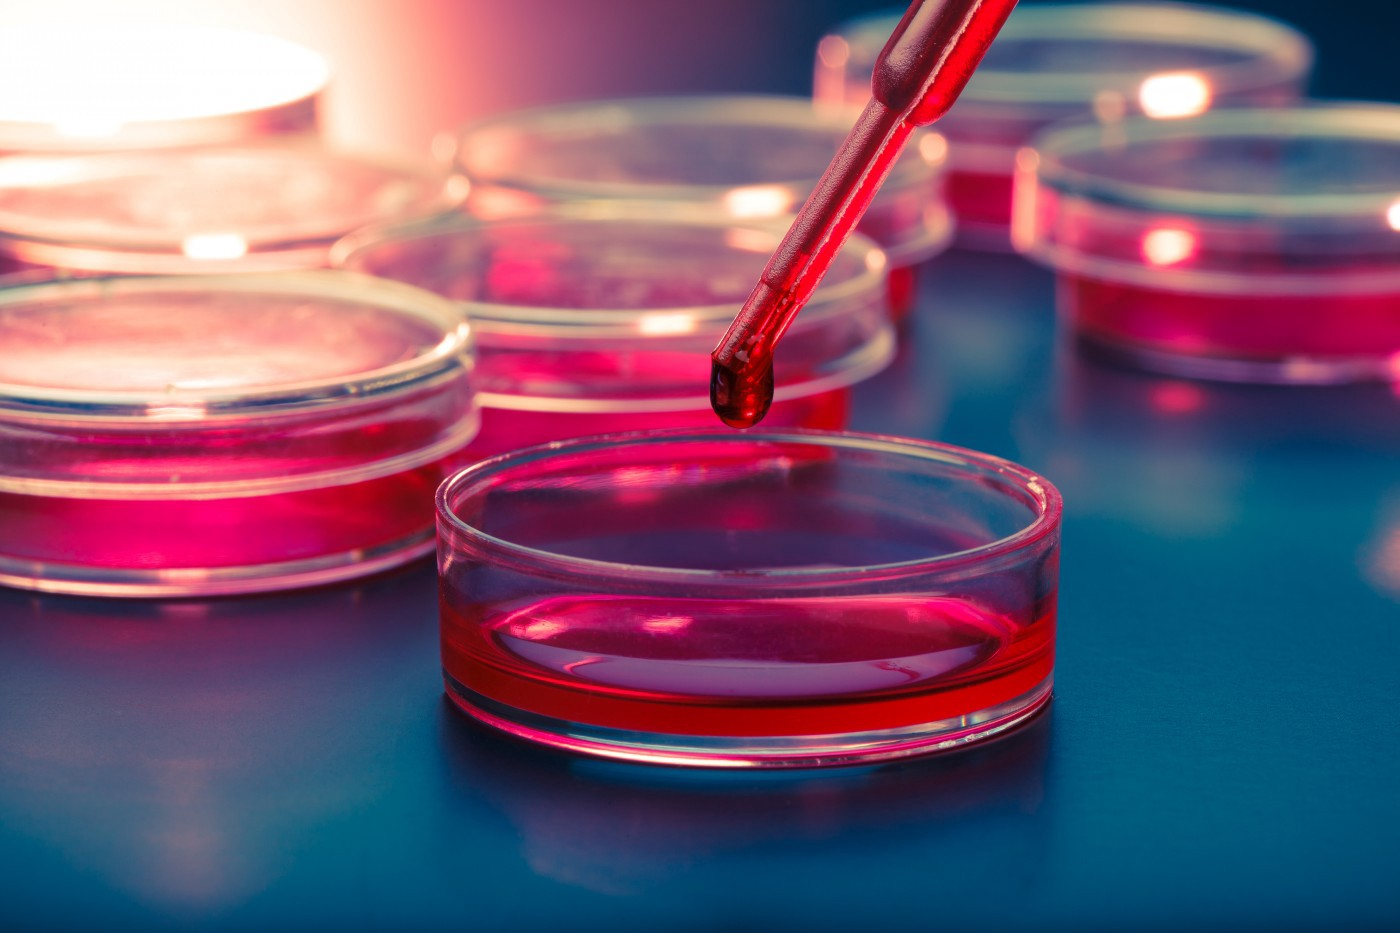 /stem-cell-therapy-triggering-human-bodys-ability-to-heal-itself-fe7aeceb9465 feature image